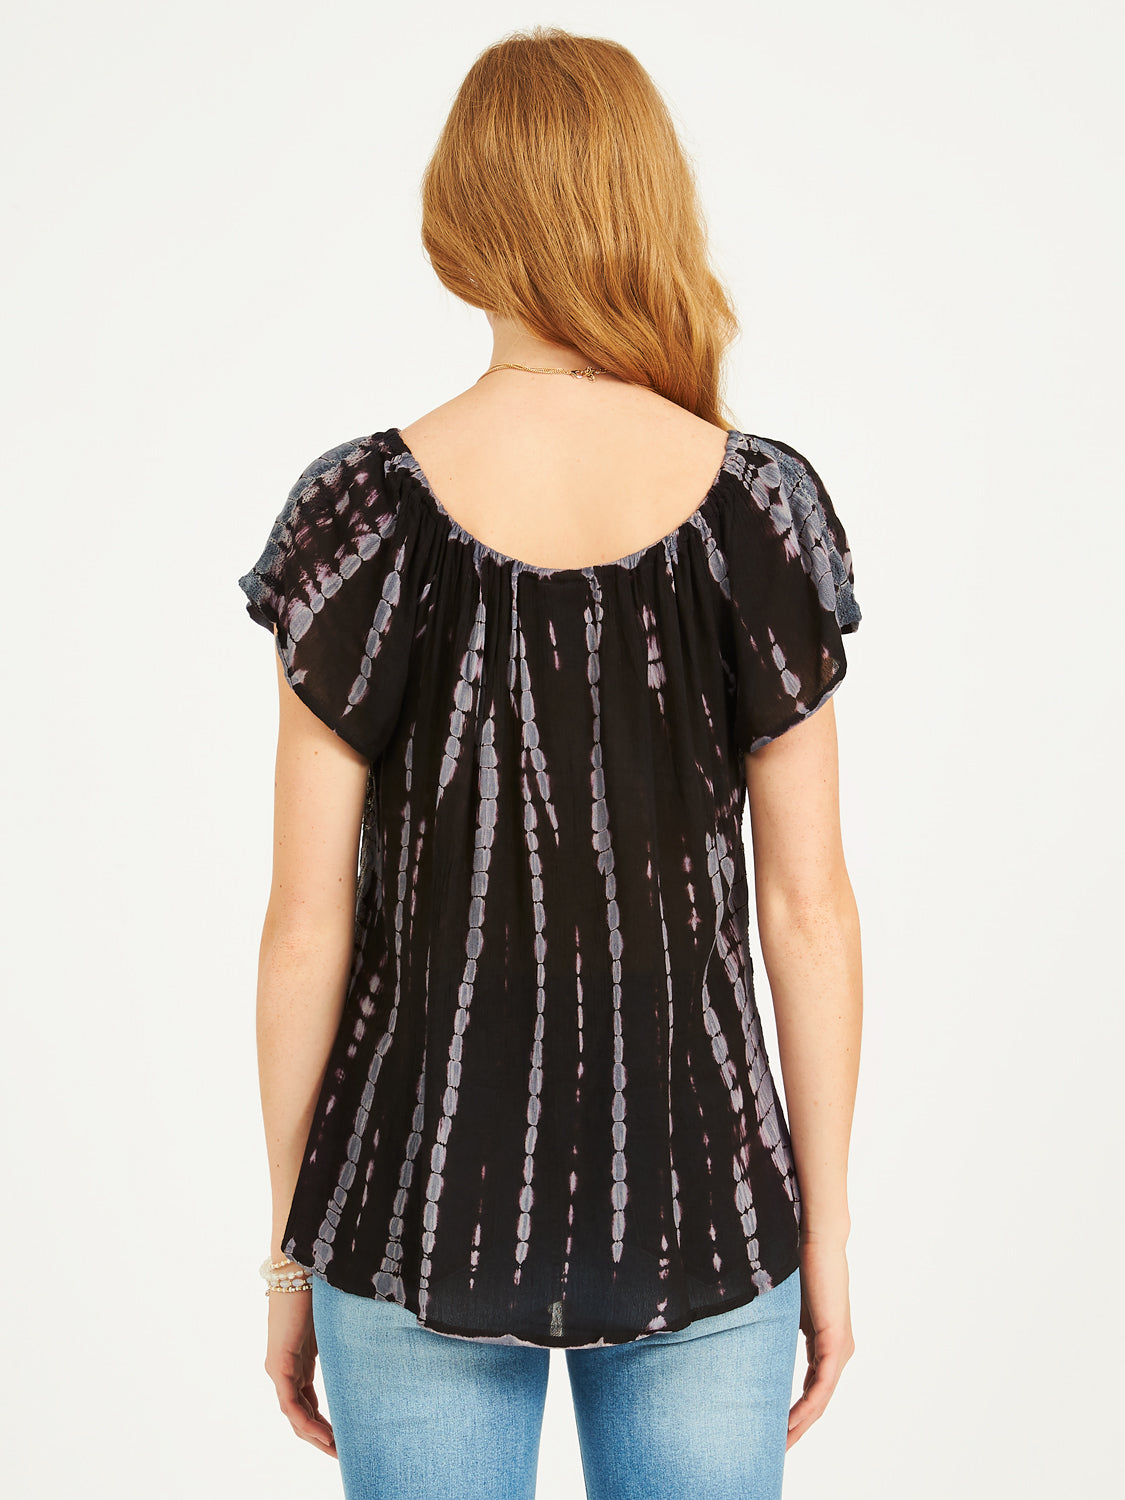 Short Sleeve Tie-Dye Top